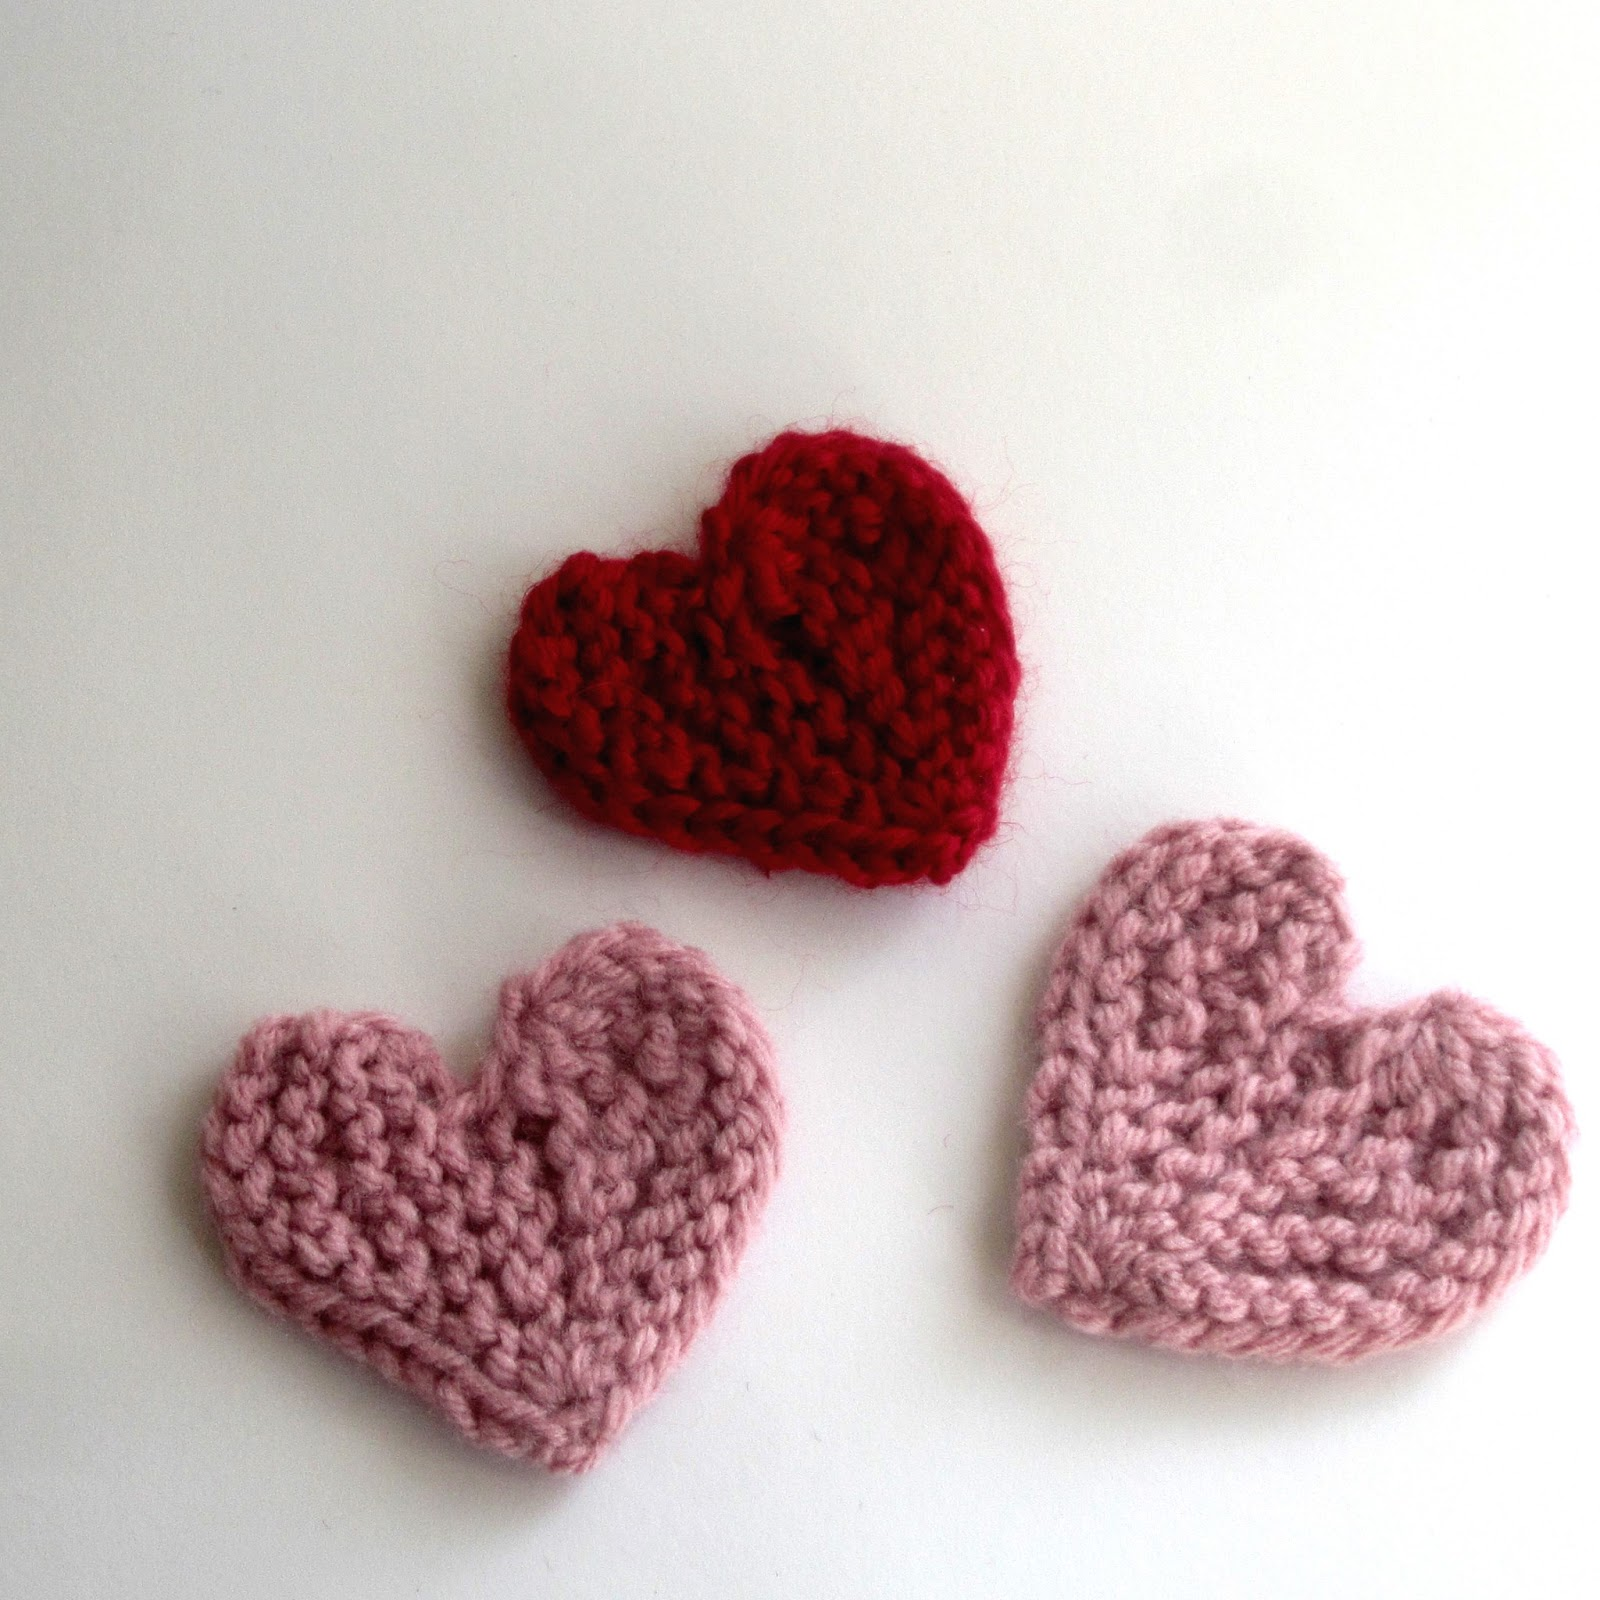 Lace and Cable: Knitted Short-row Hearts